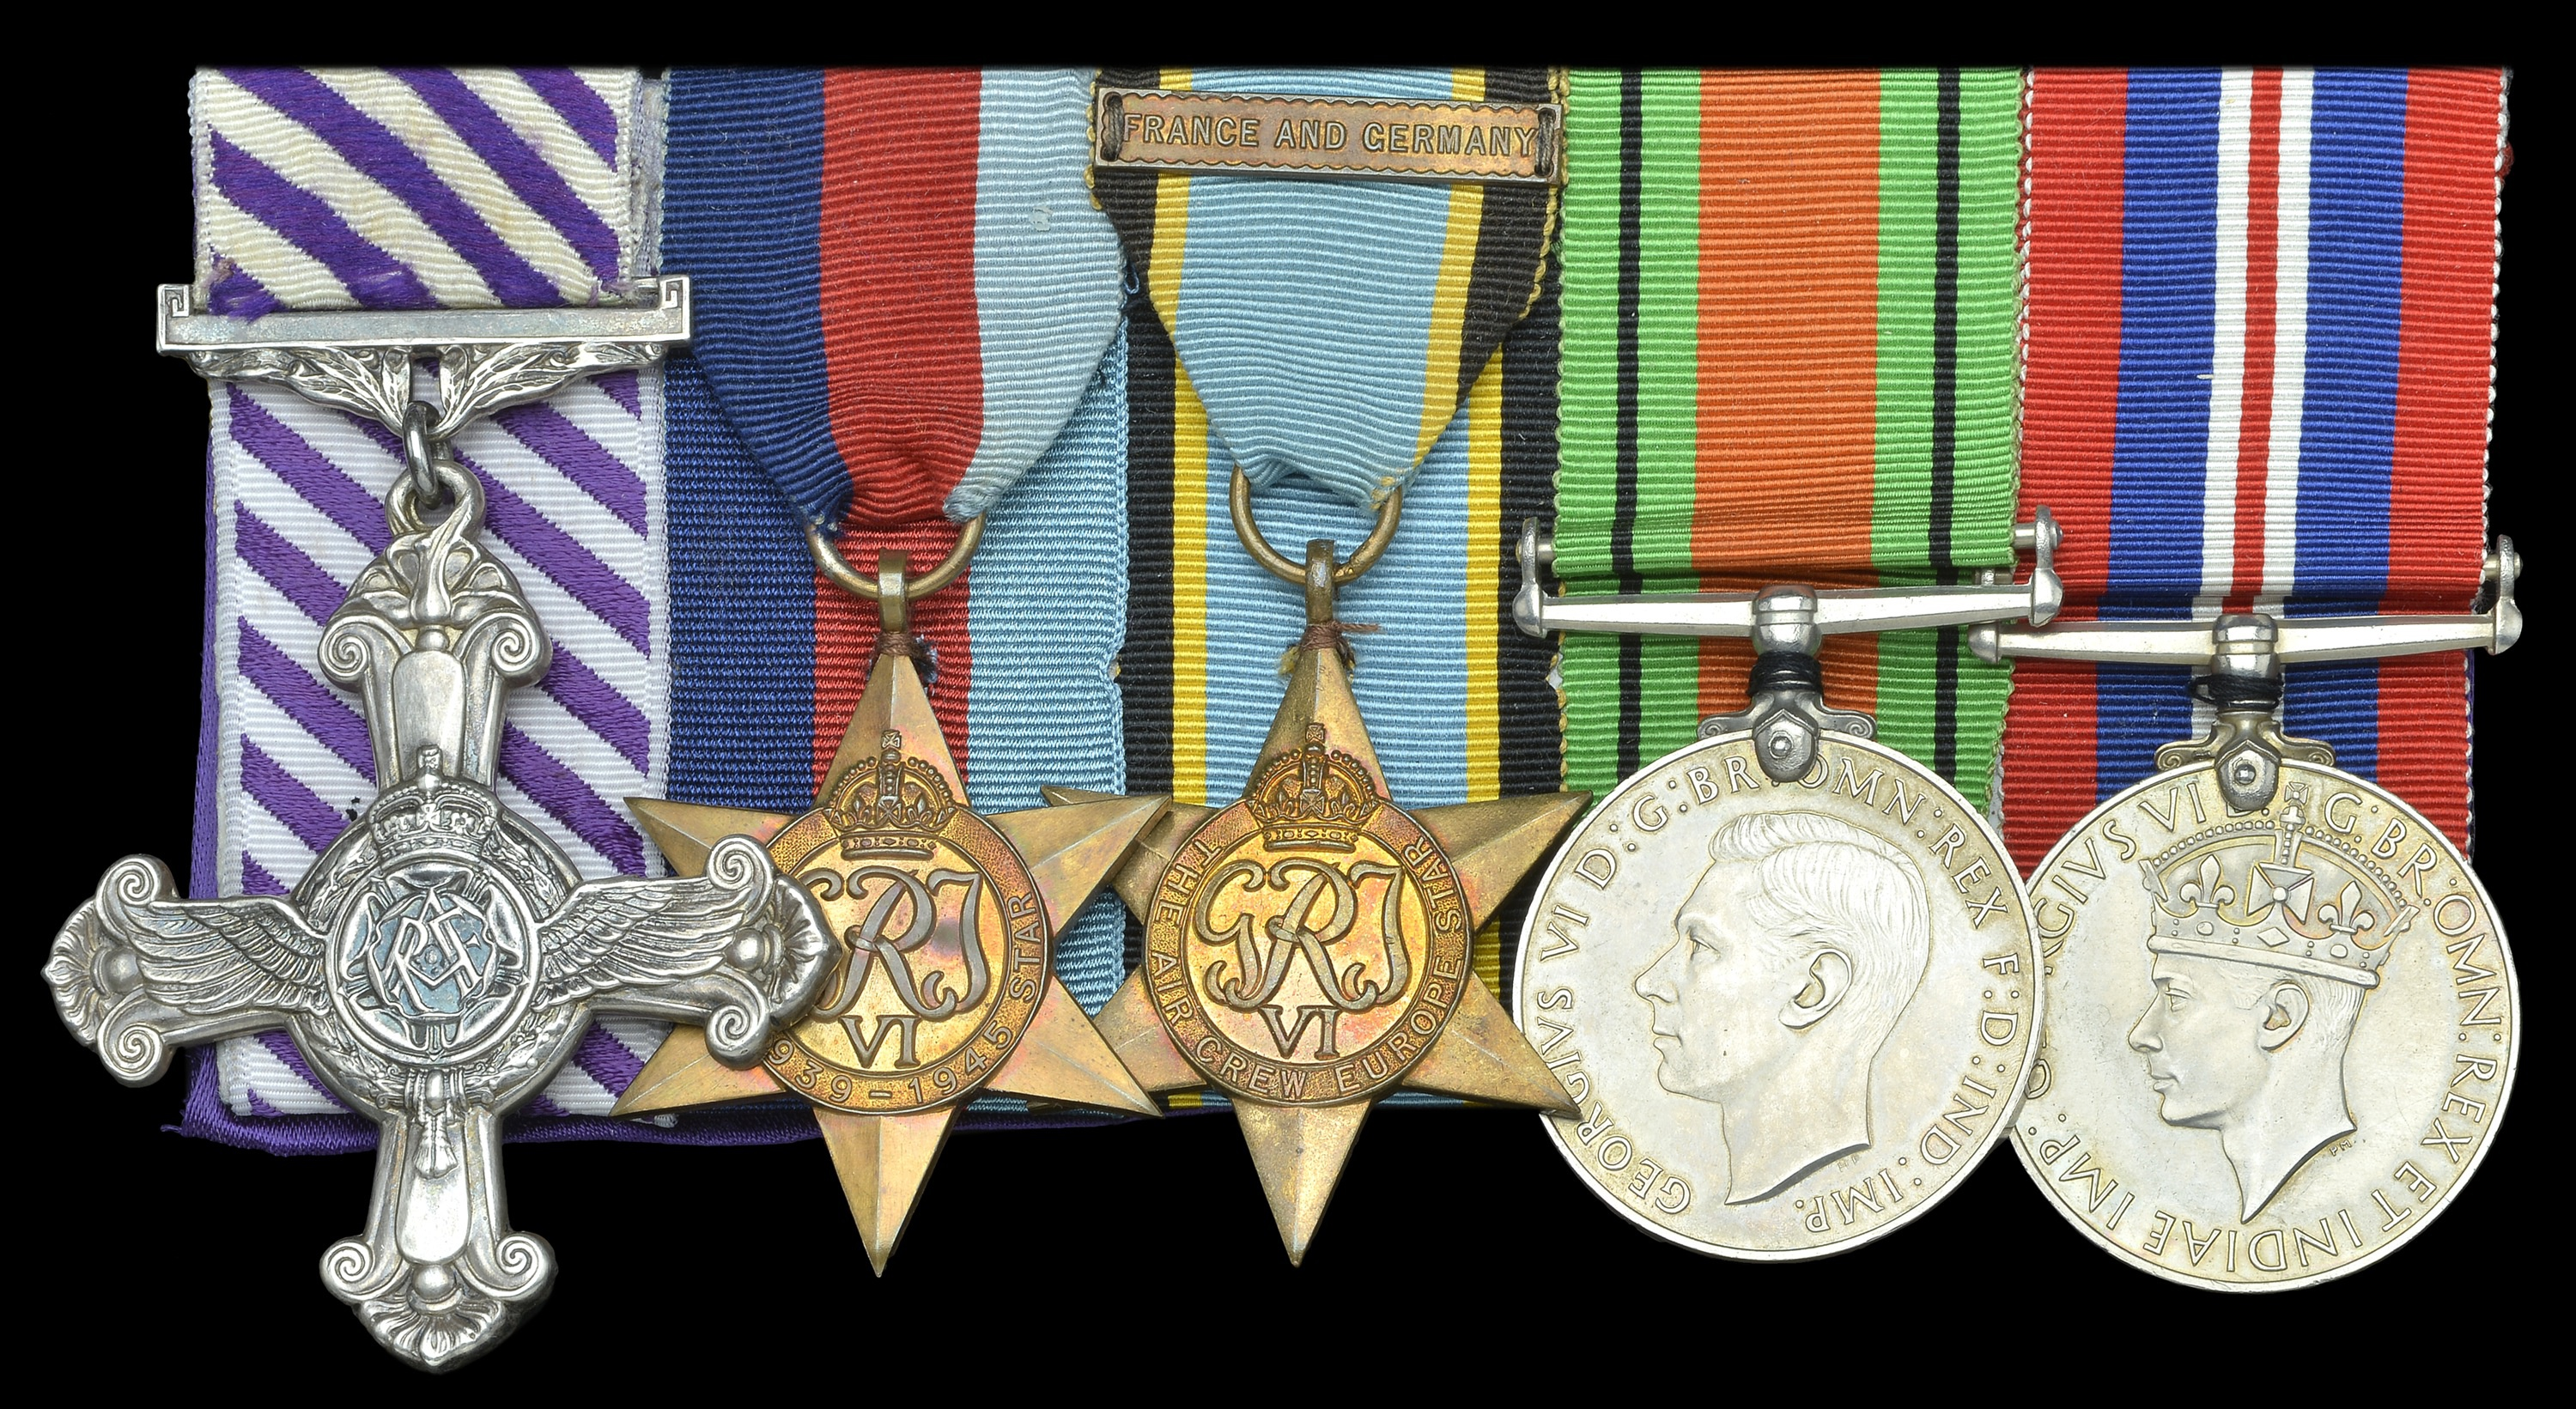 The Distinguished Flying Cross (left) in an RAF group which has the RAF award, the Air Crew Europe Star, with the additional ribbon clasp 'France and Germany' to show service in NW Europe after 6 June 1944